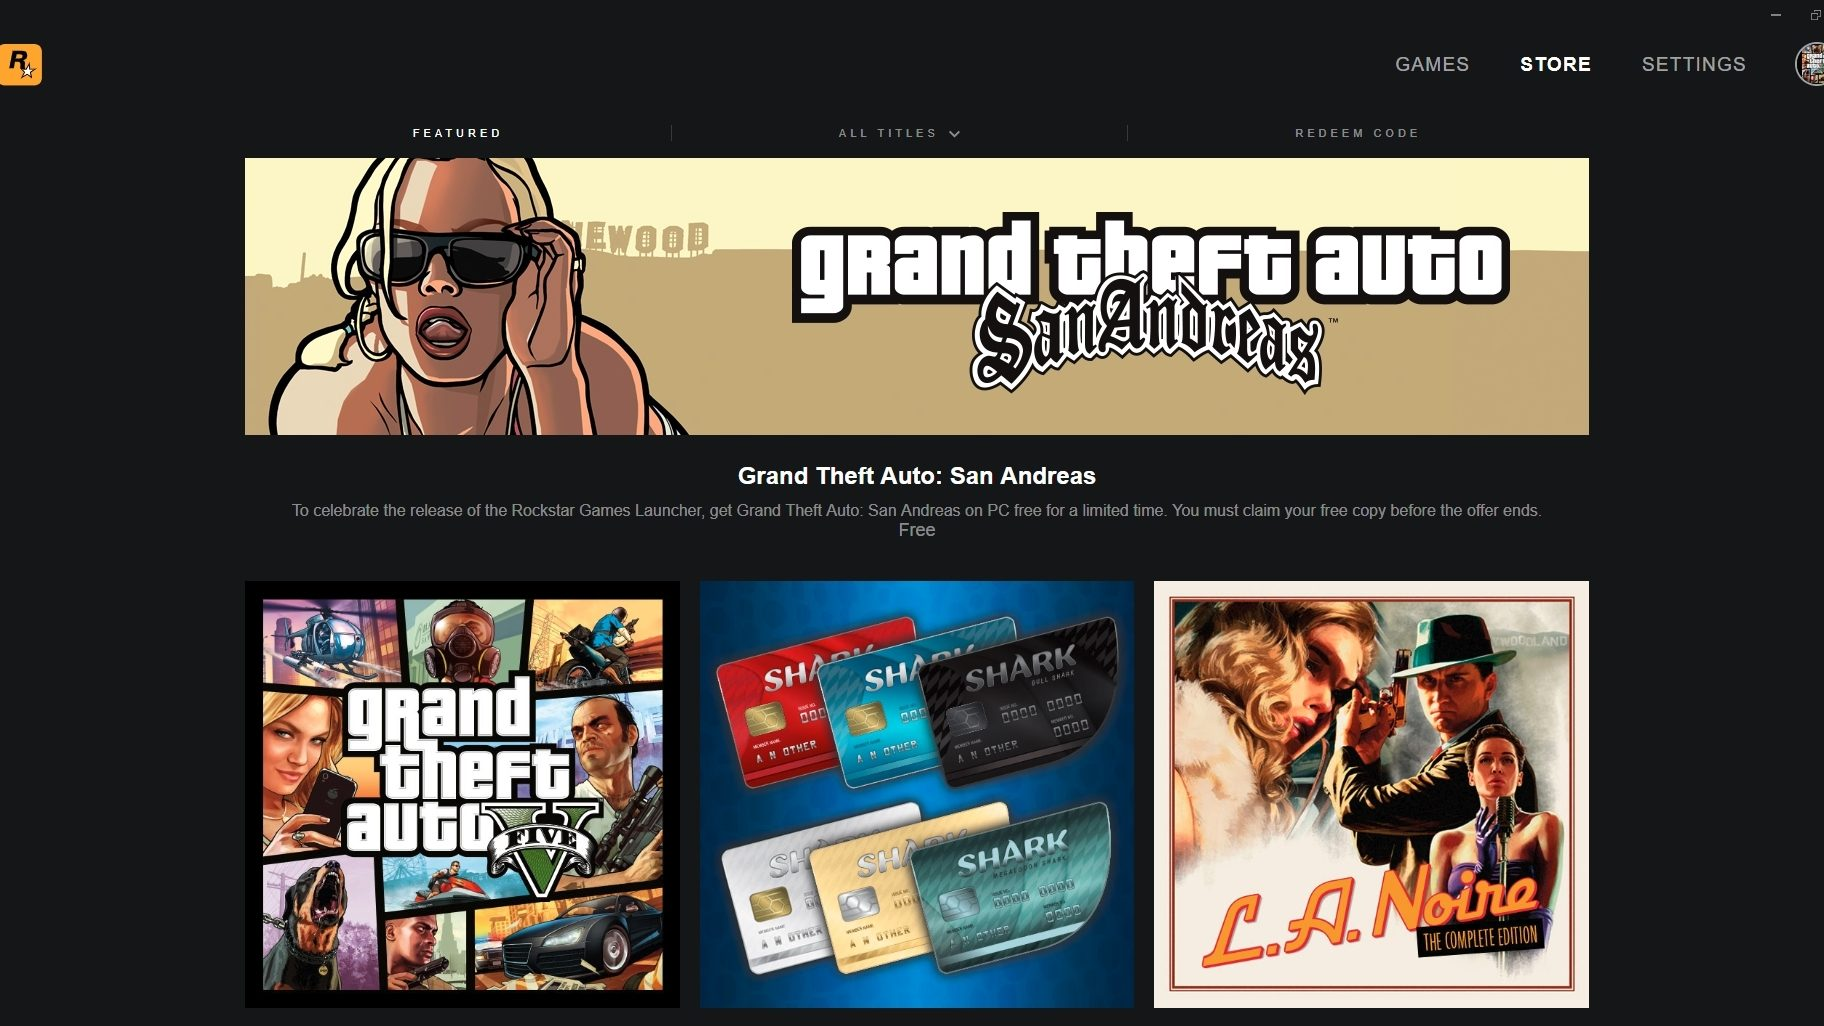 Rockstar makes PC games launcher, gives away San Andreas for free